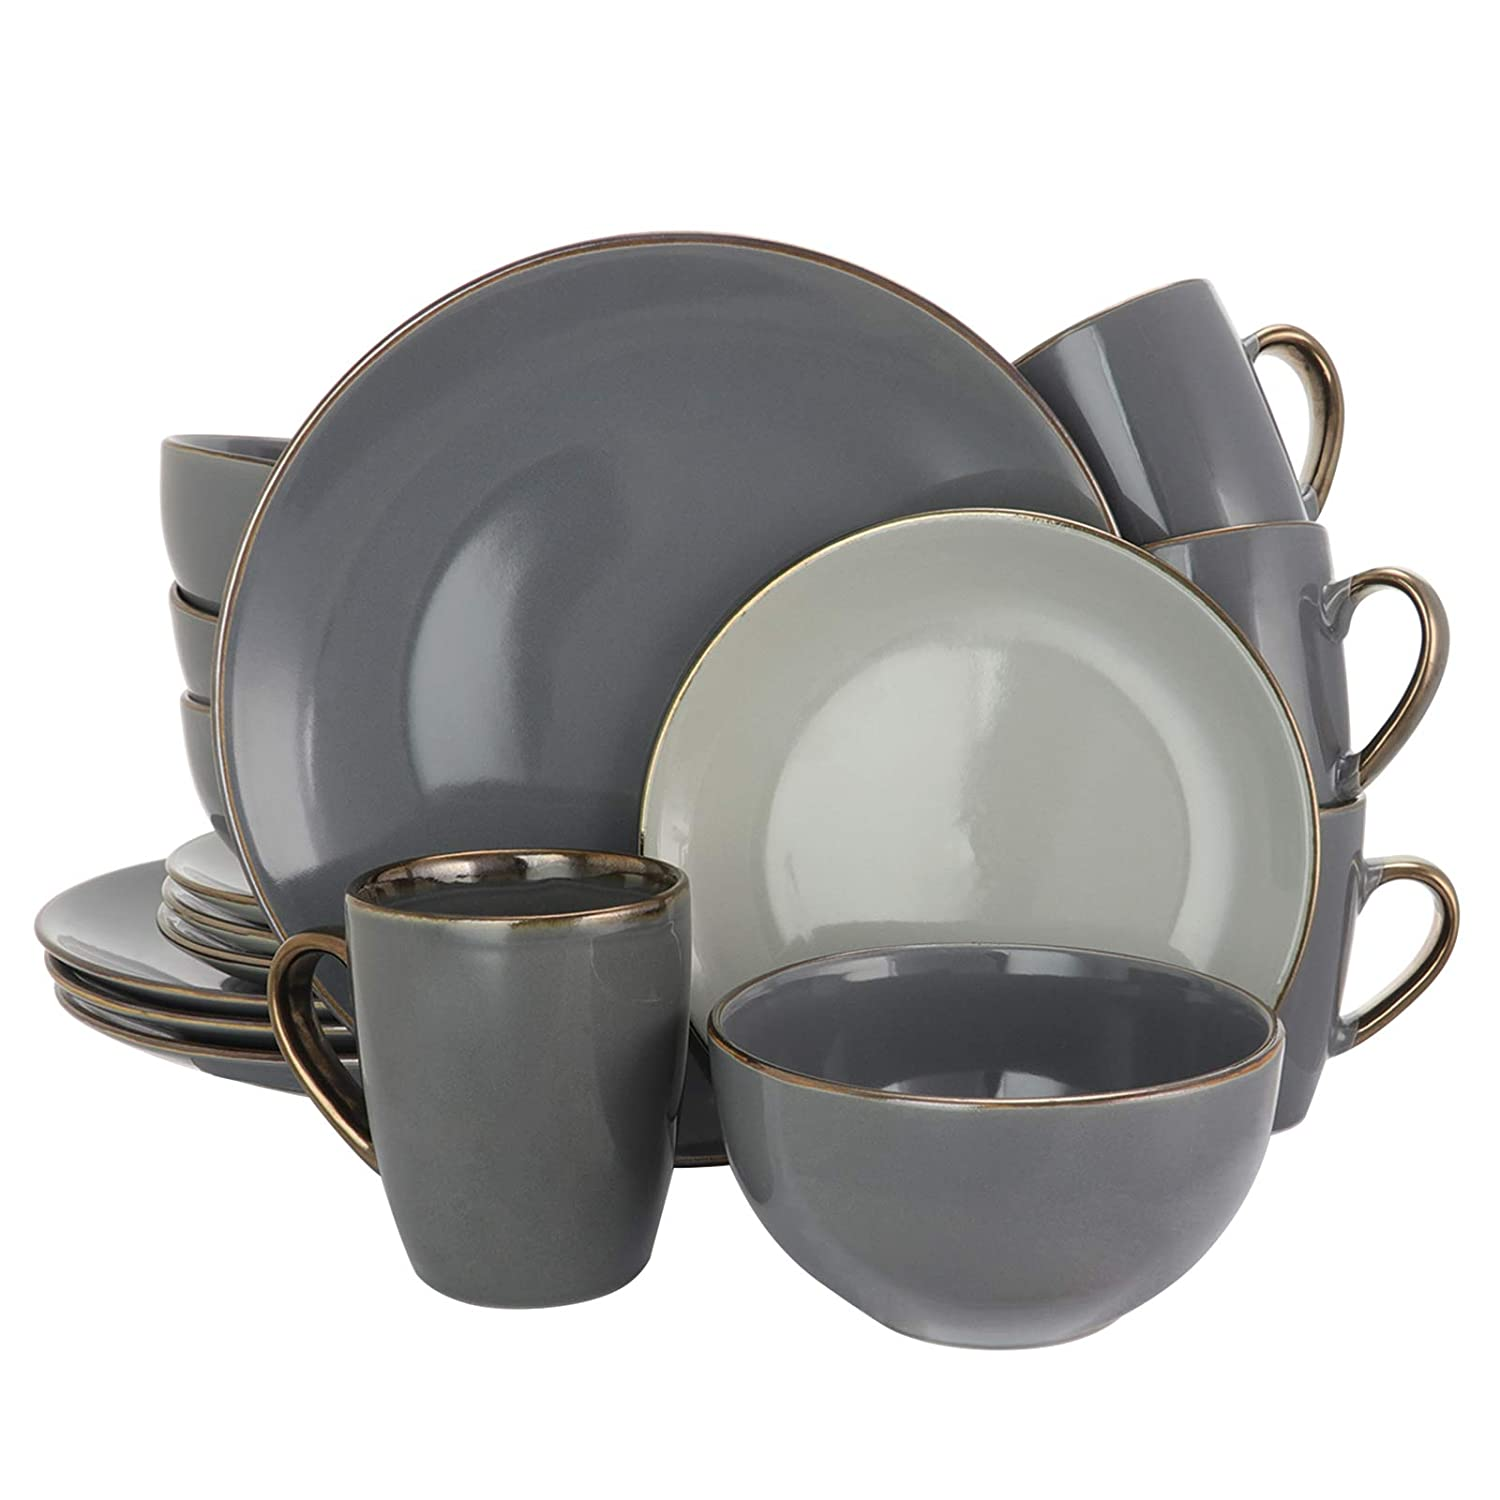 Elama EL-TAHITIANGRAND Tahitian Grand 16 Piece Luxurious Stoneware Dinnerware Stone and Slate with Complete Setting for 4, 16pc, Assorted Colors